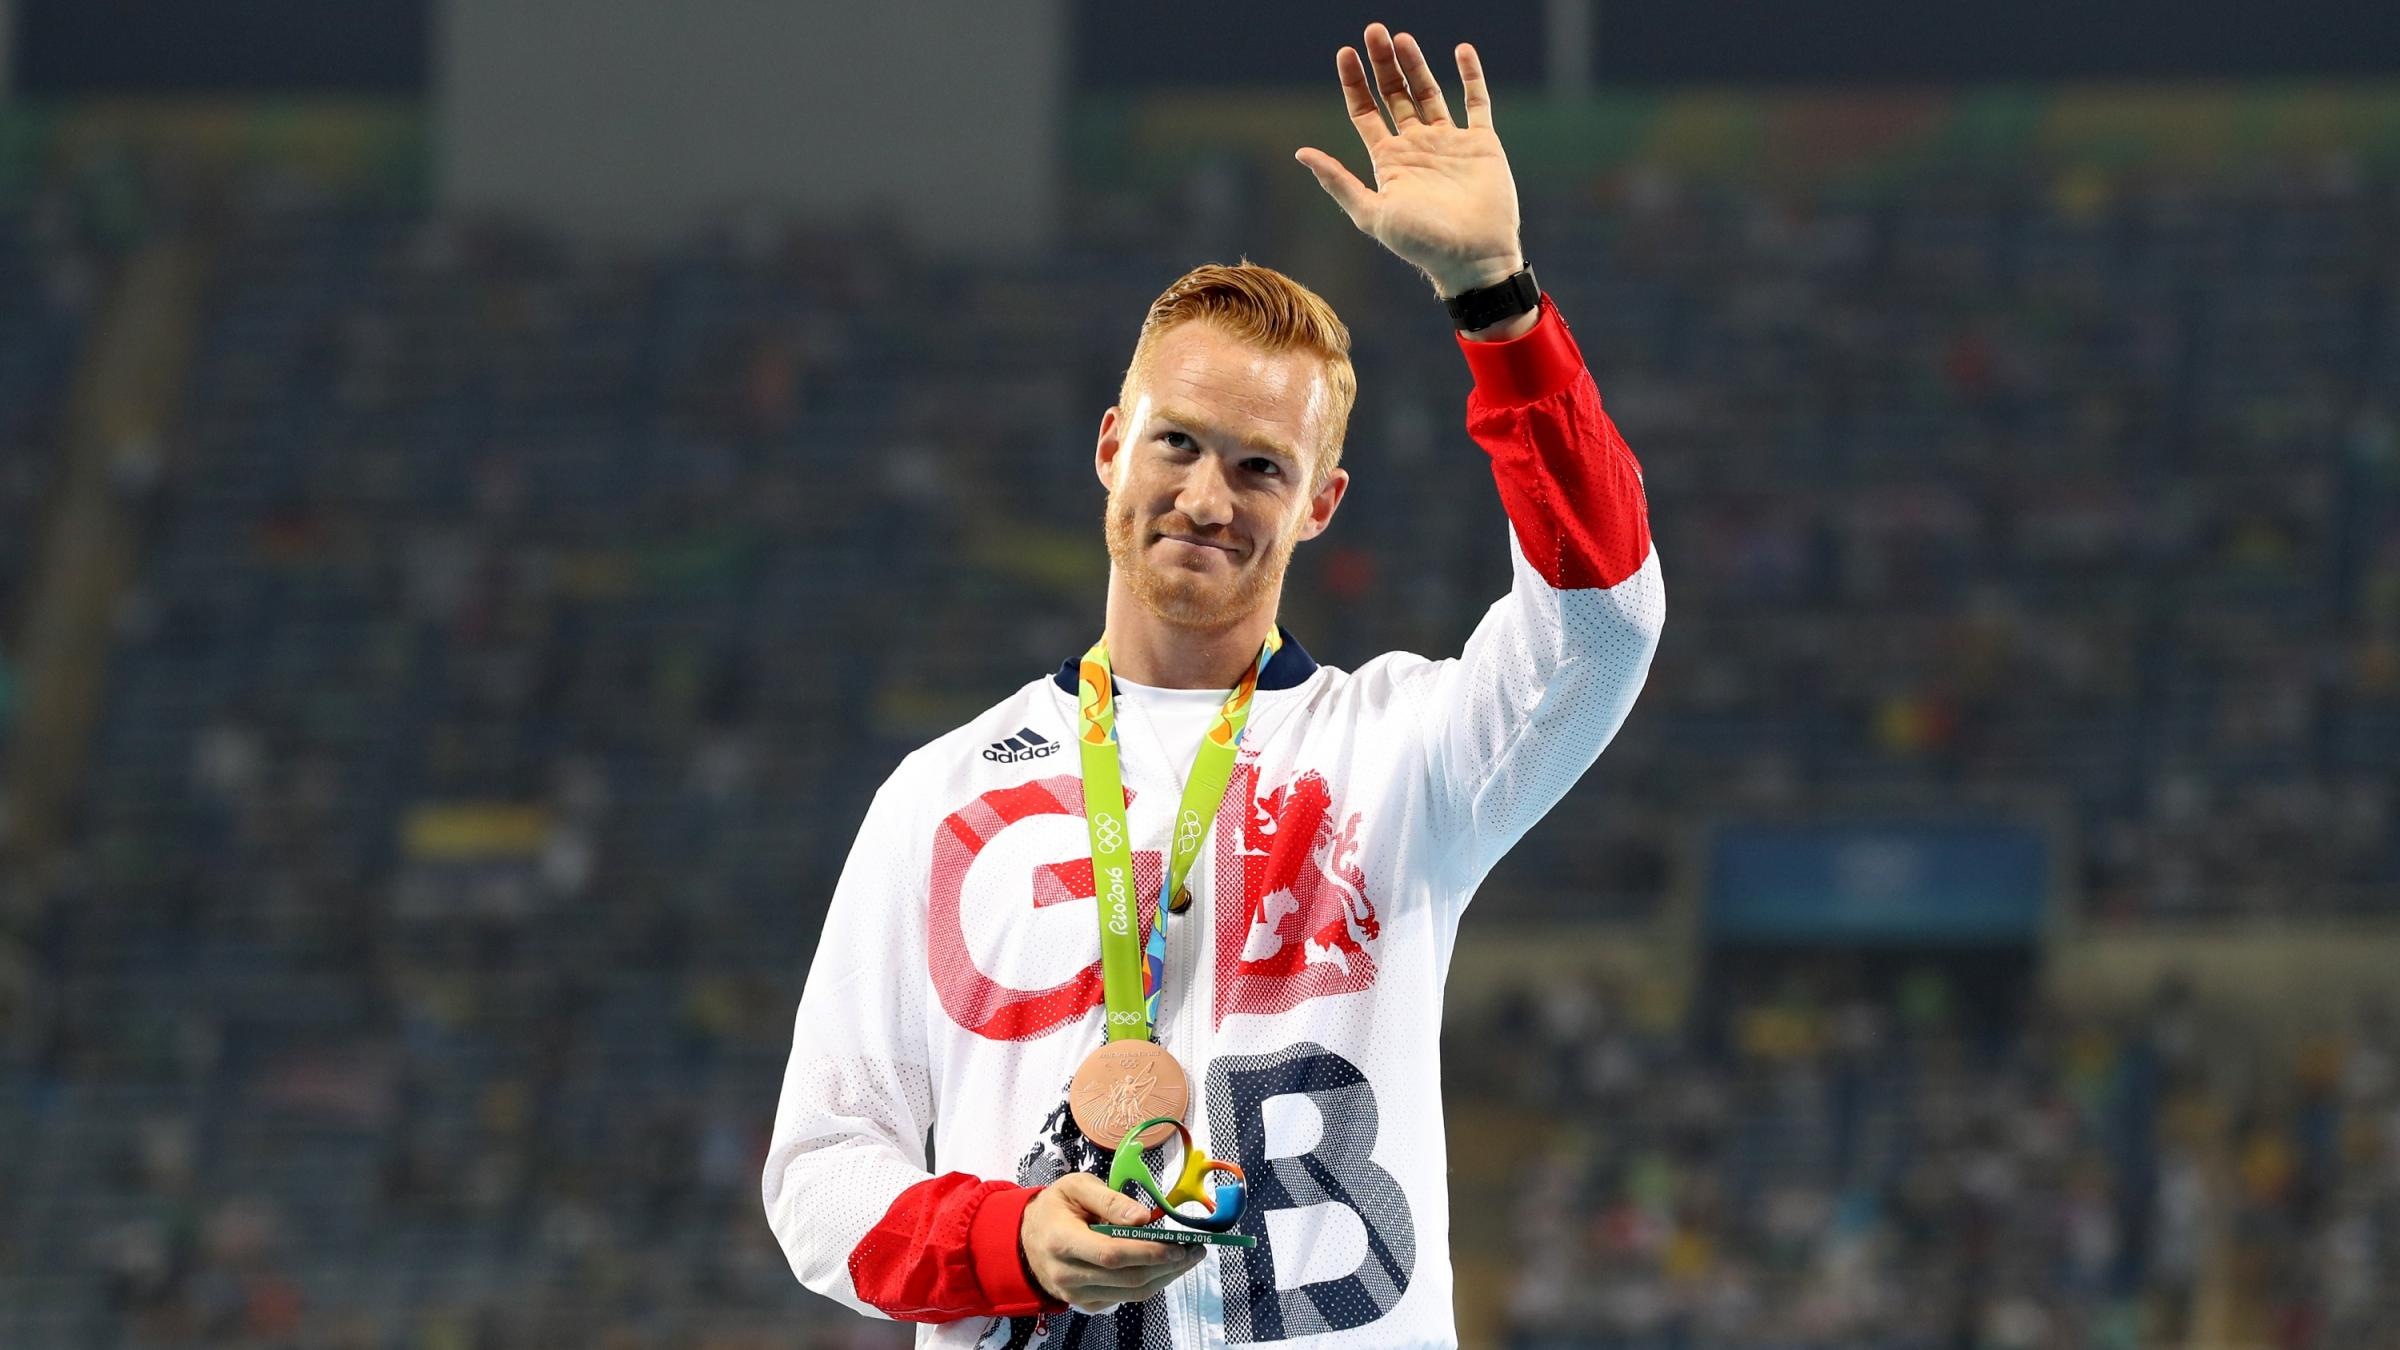 2400x1350 - Greg Rutherford Wallpapers 13